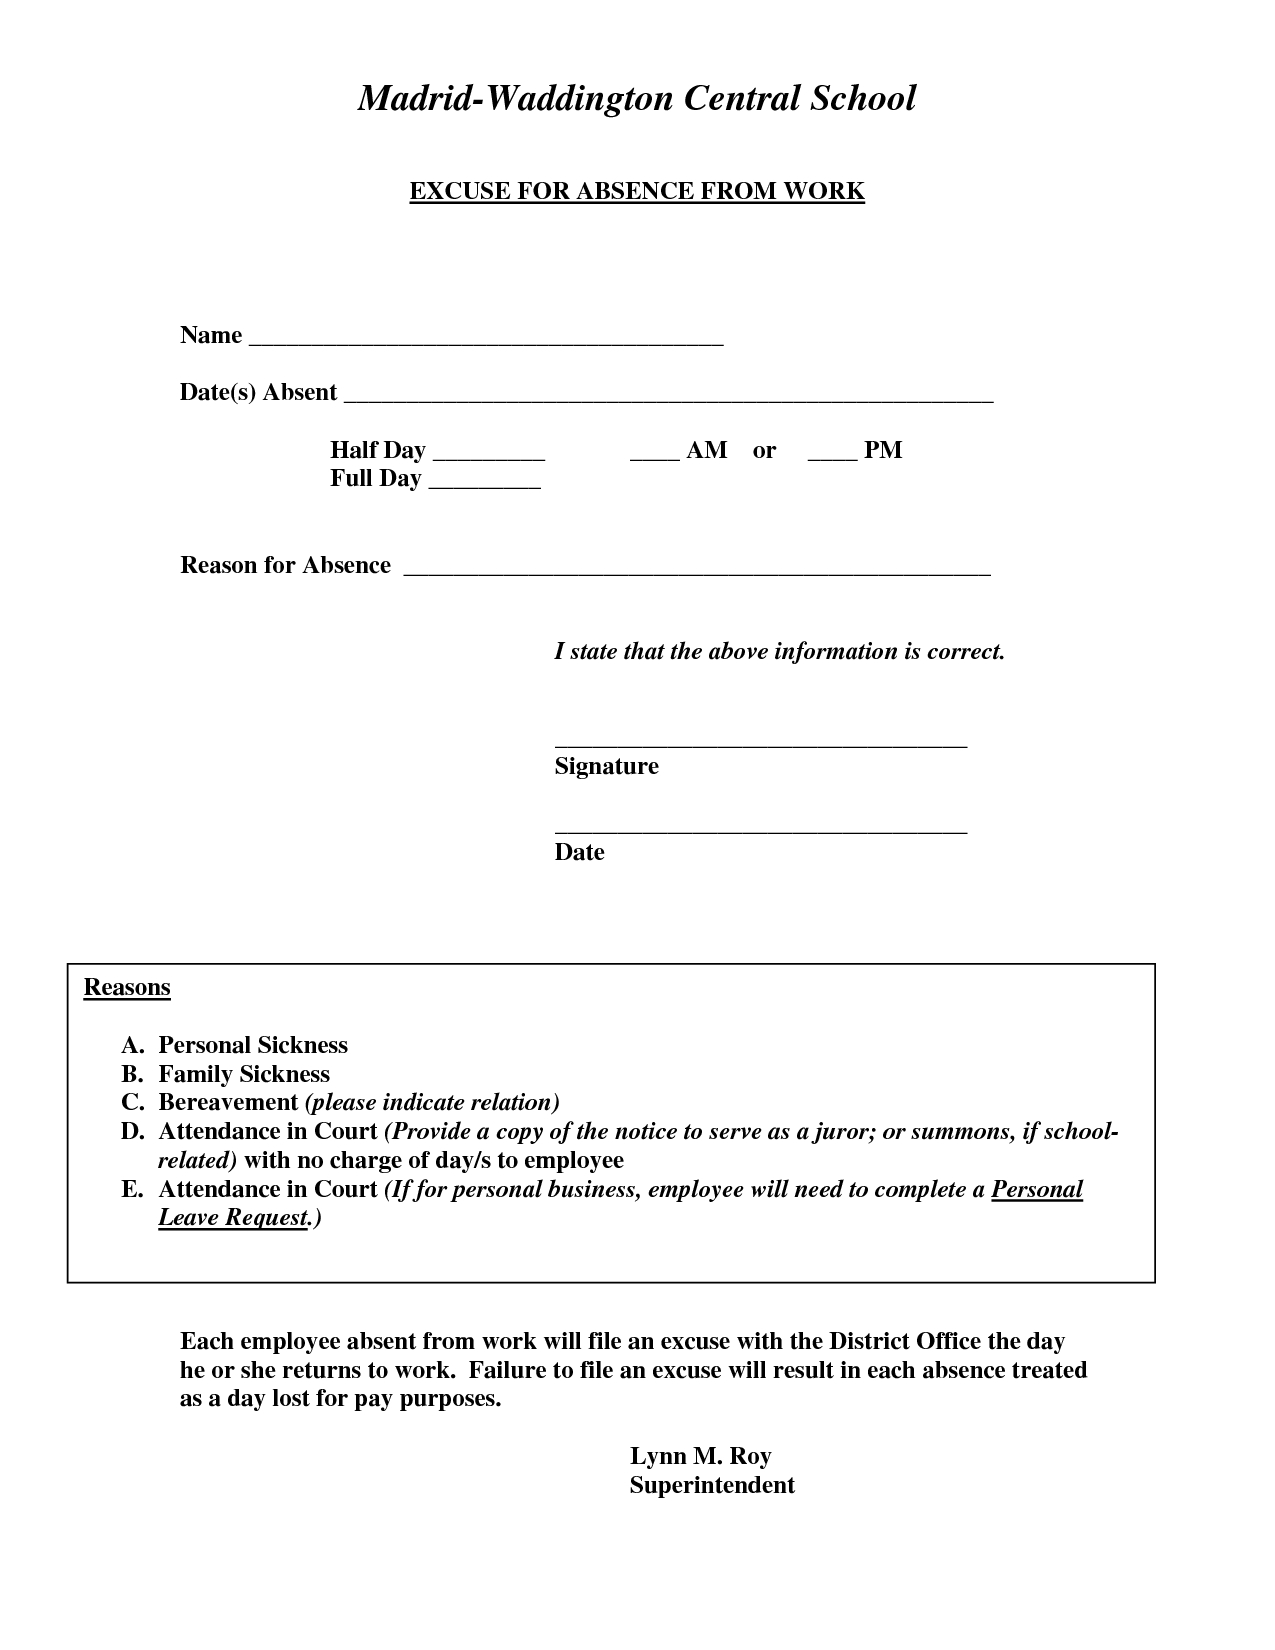 Doctors Excuse For Work Template | Excuse For Absence From Work - Free Printable Doctors Note For Work Pdf